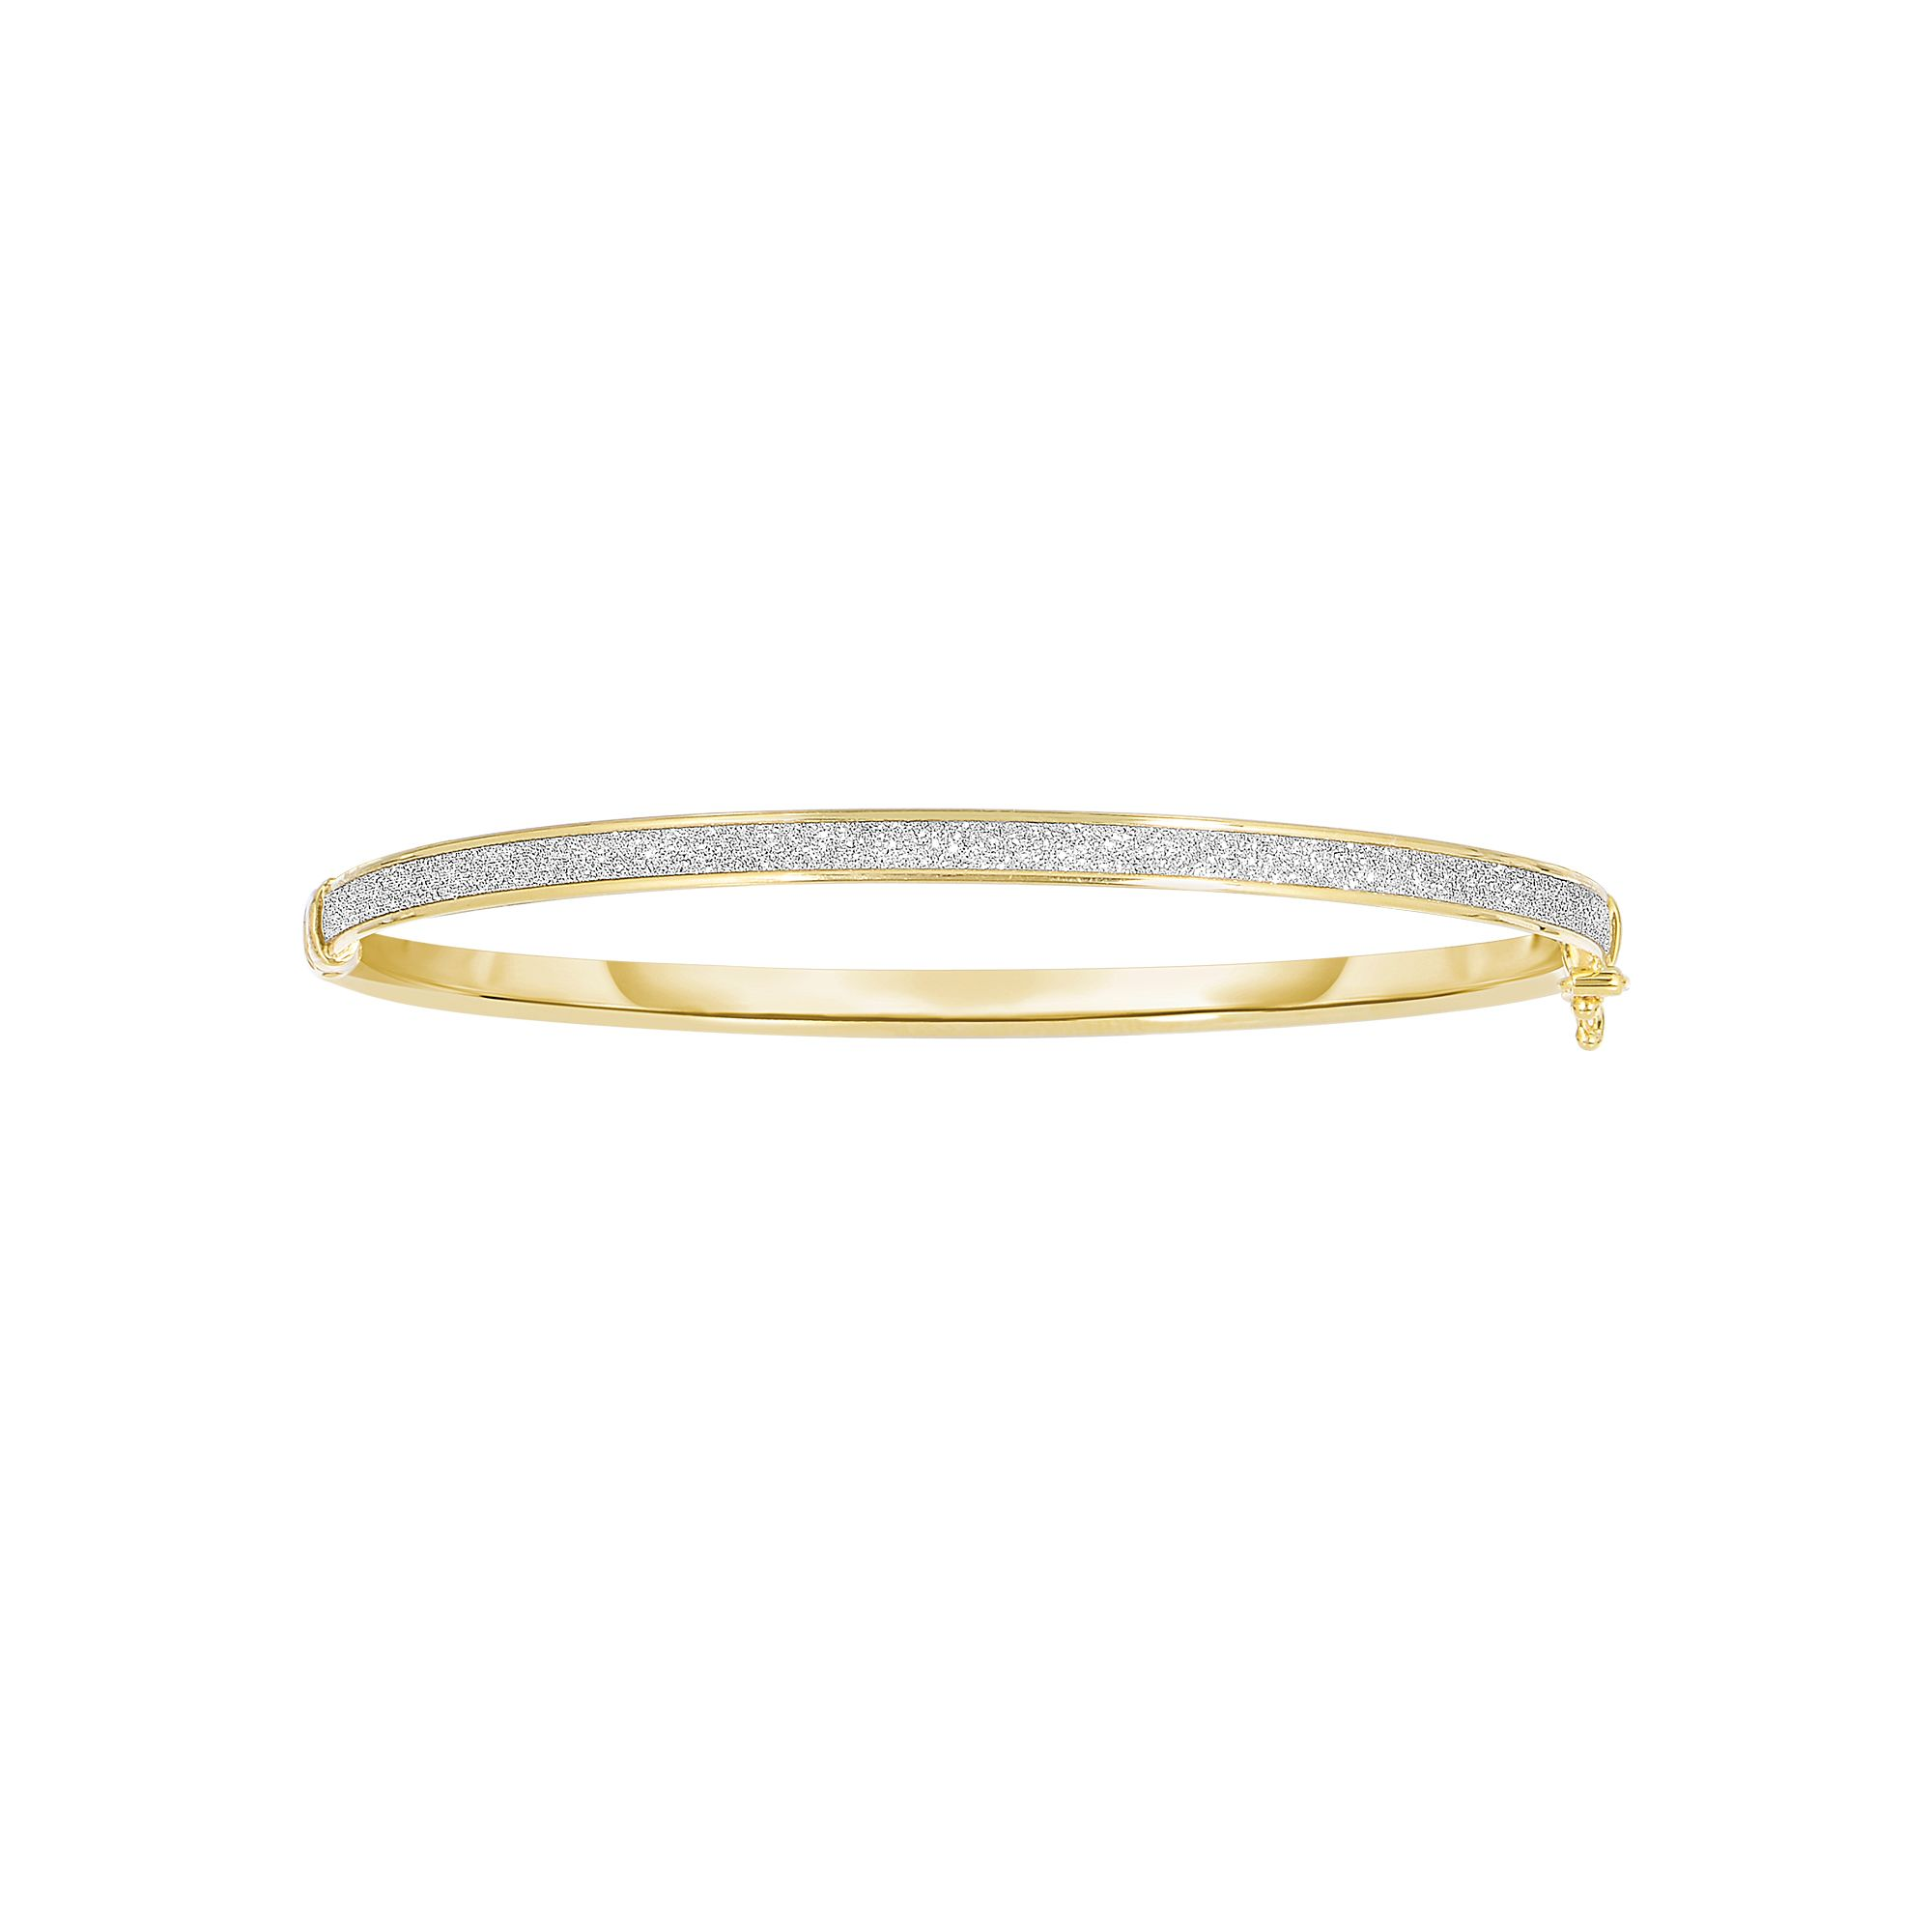 14 Karat Yellow Gold Thick Glitter Bangle Bracelet